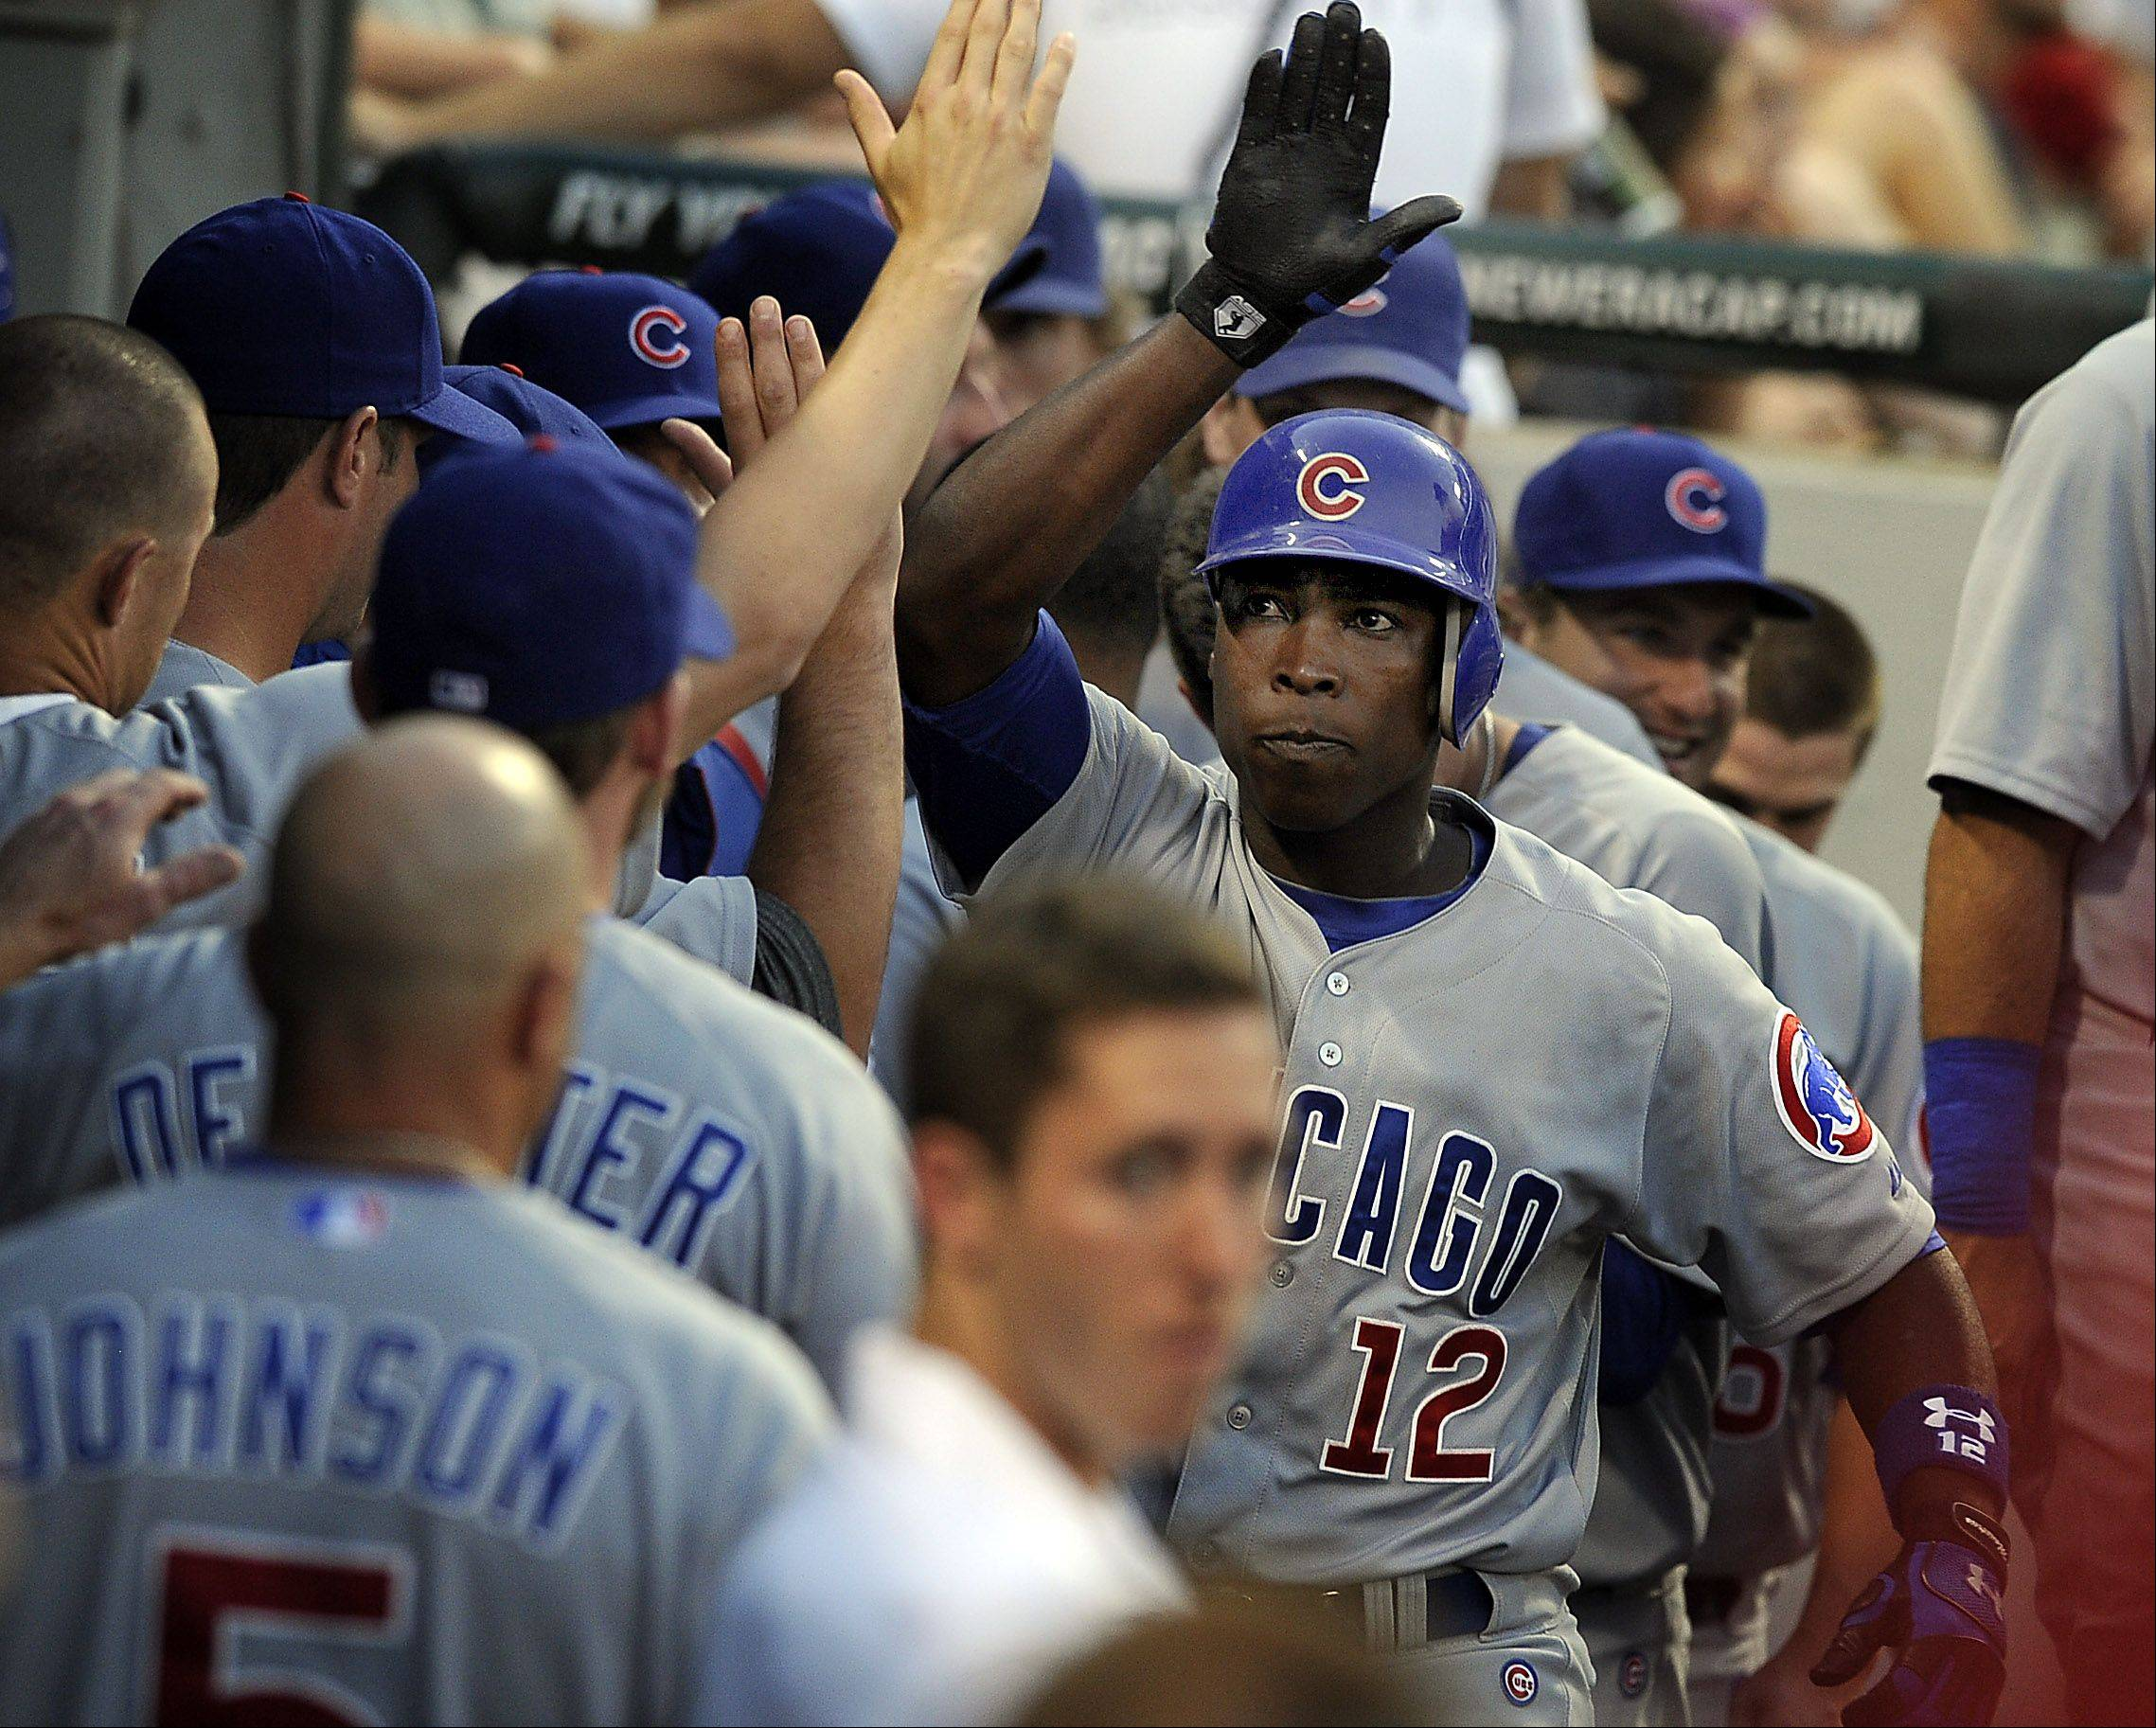 Chicago Cubs' Alfonso Soriano slugs a fifth inning home run.